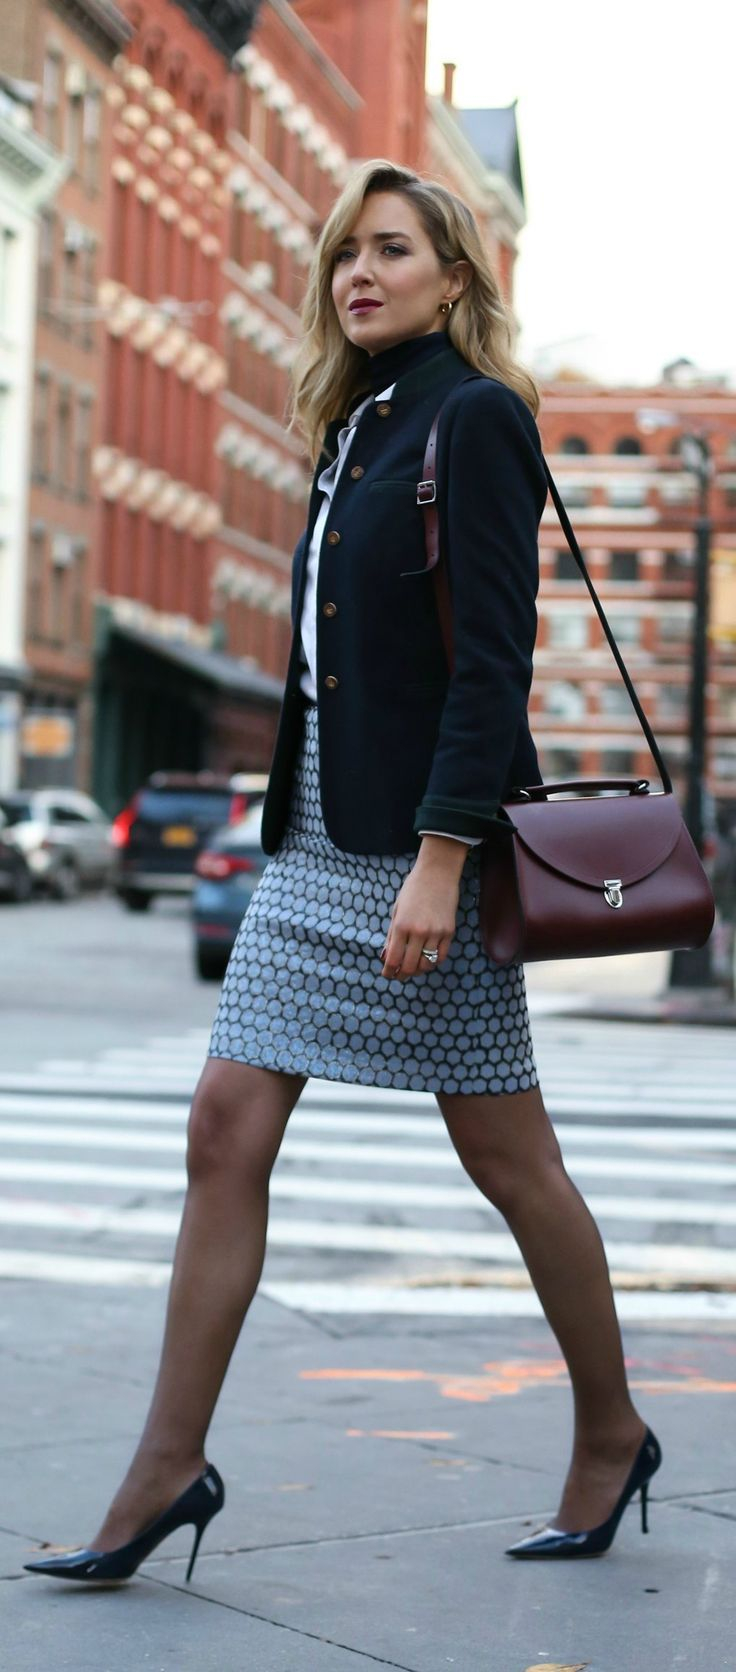 metallic jacquard blue, navy and gold pencil skirt, classic navy blazer, layered navy turtleneck under white button down shirt, sheer navy tights, patent pointy toe pumps, burgundy satchel bag